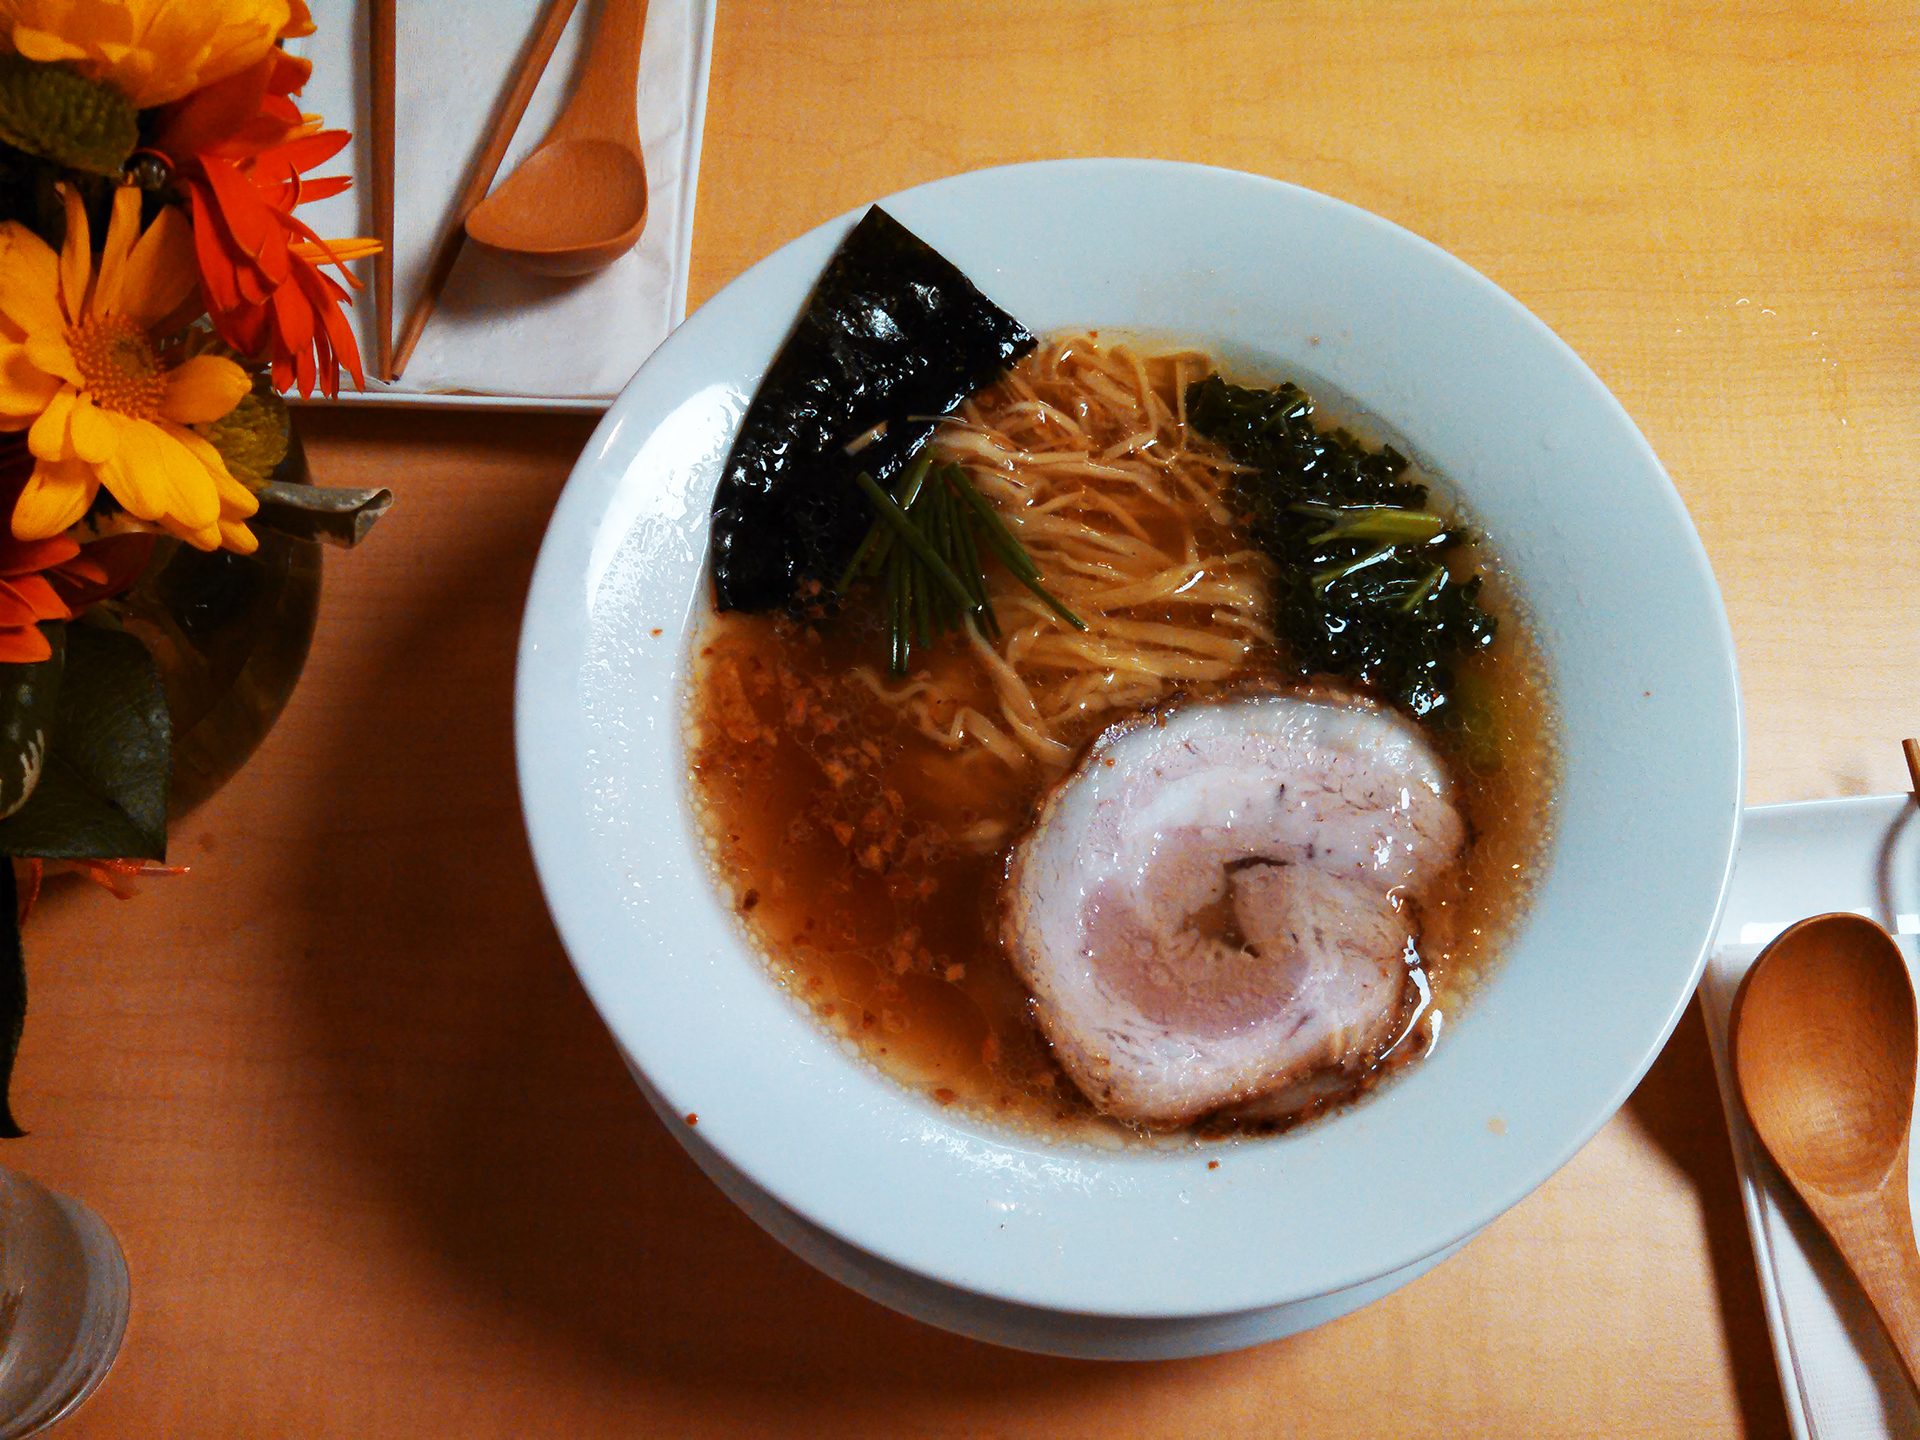 The Shio ramen with pork chasu.